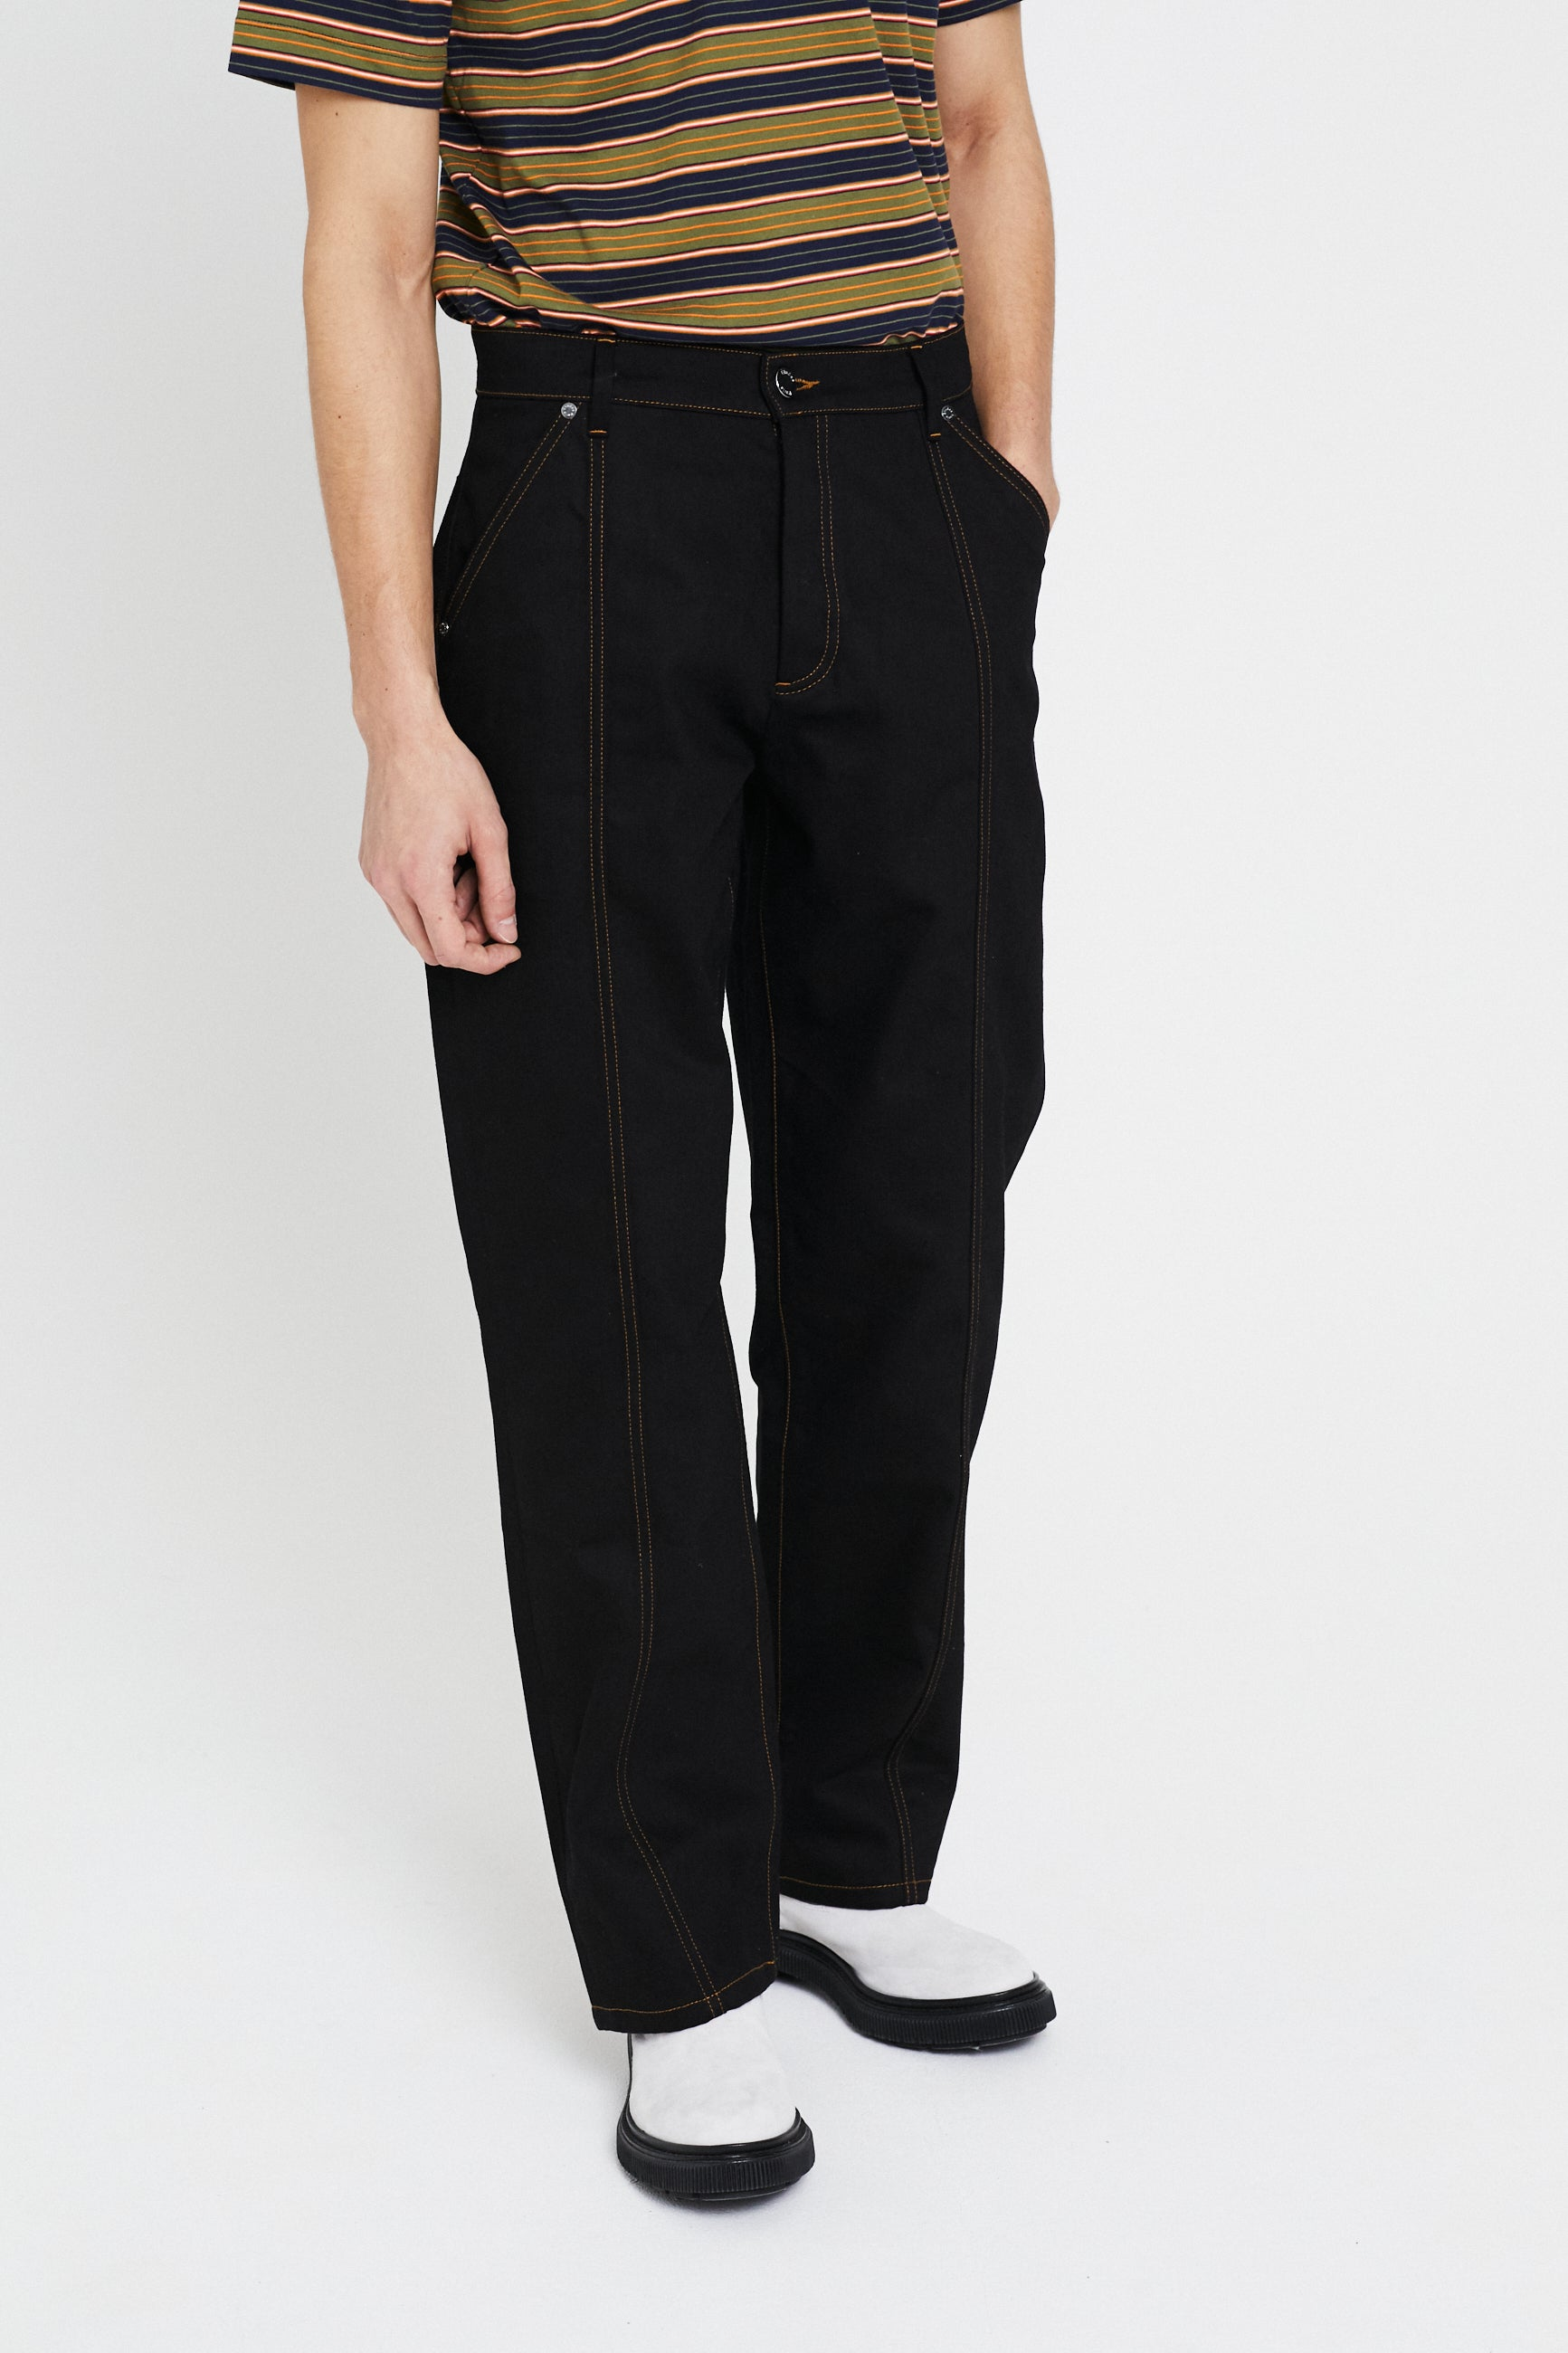 Études Edge Black Trousers 2